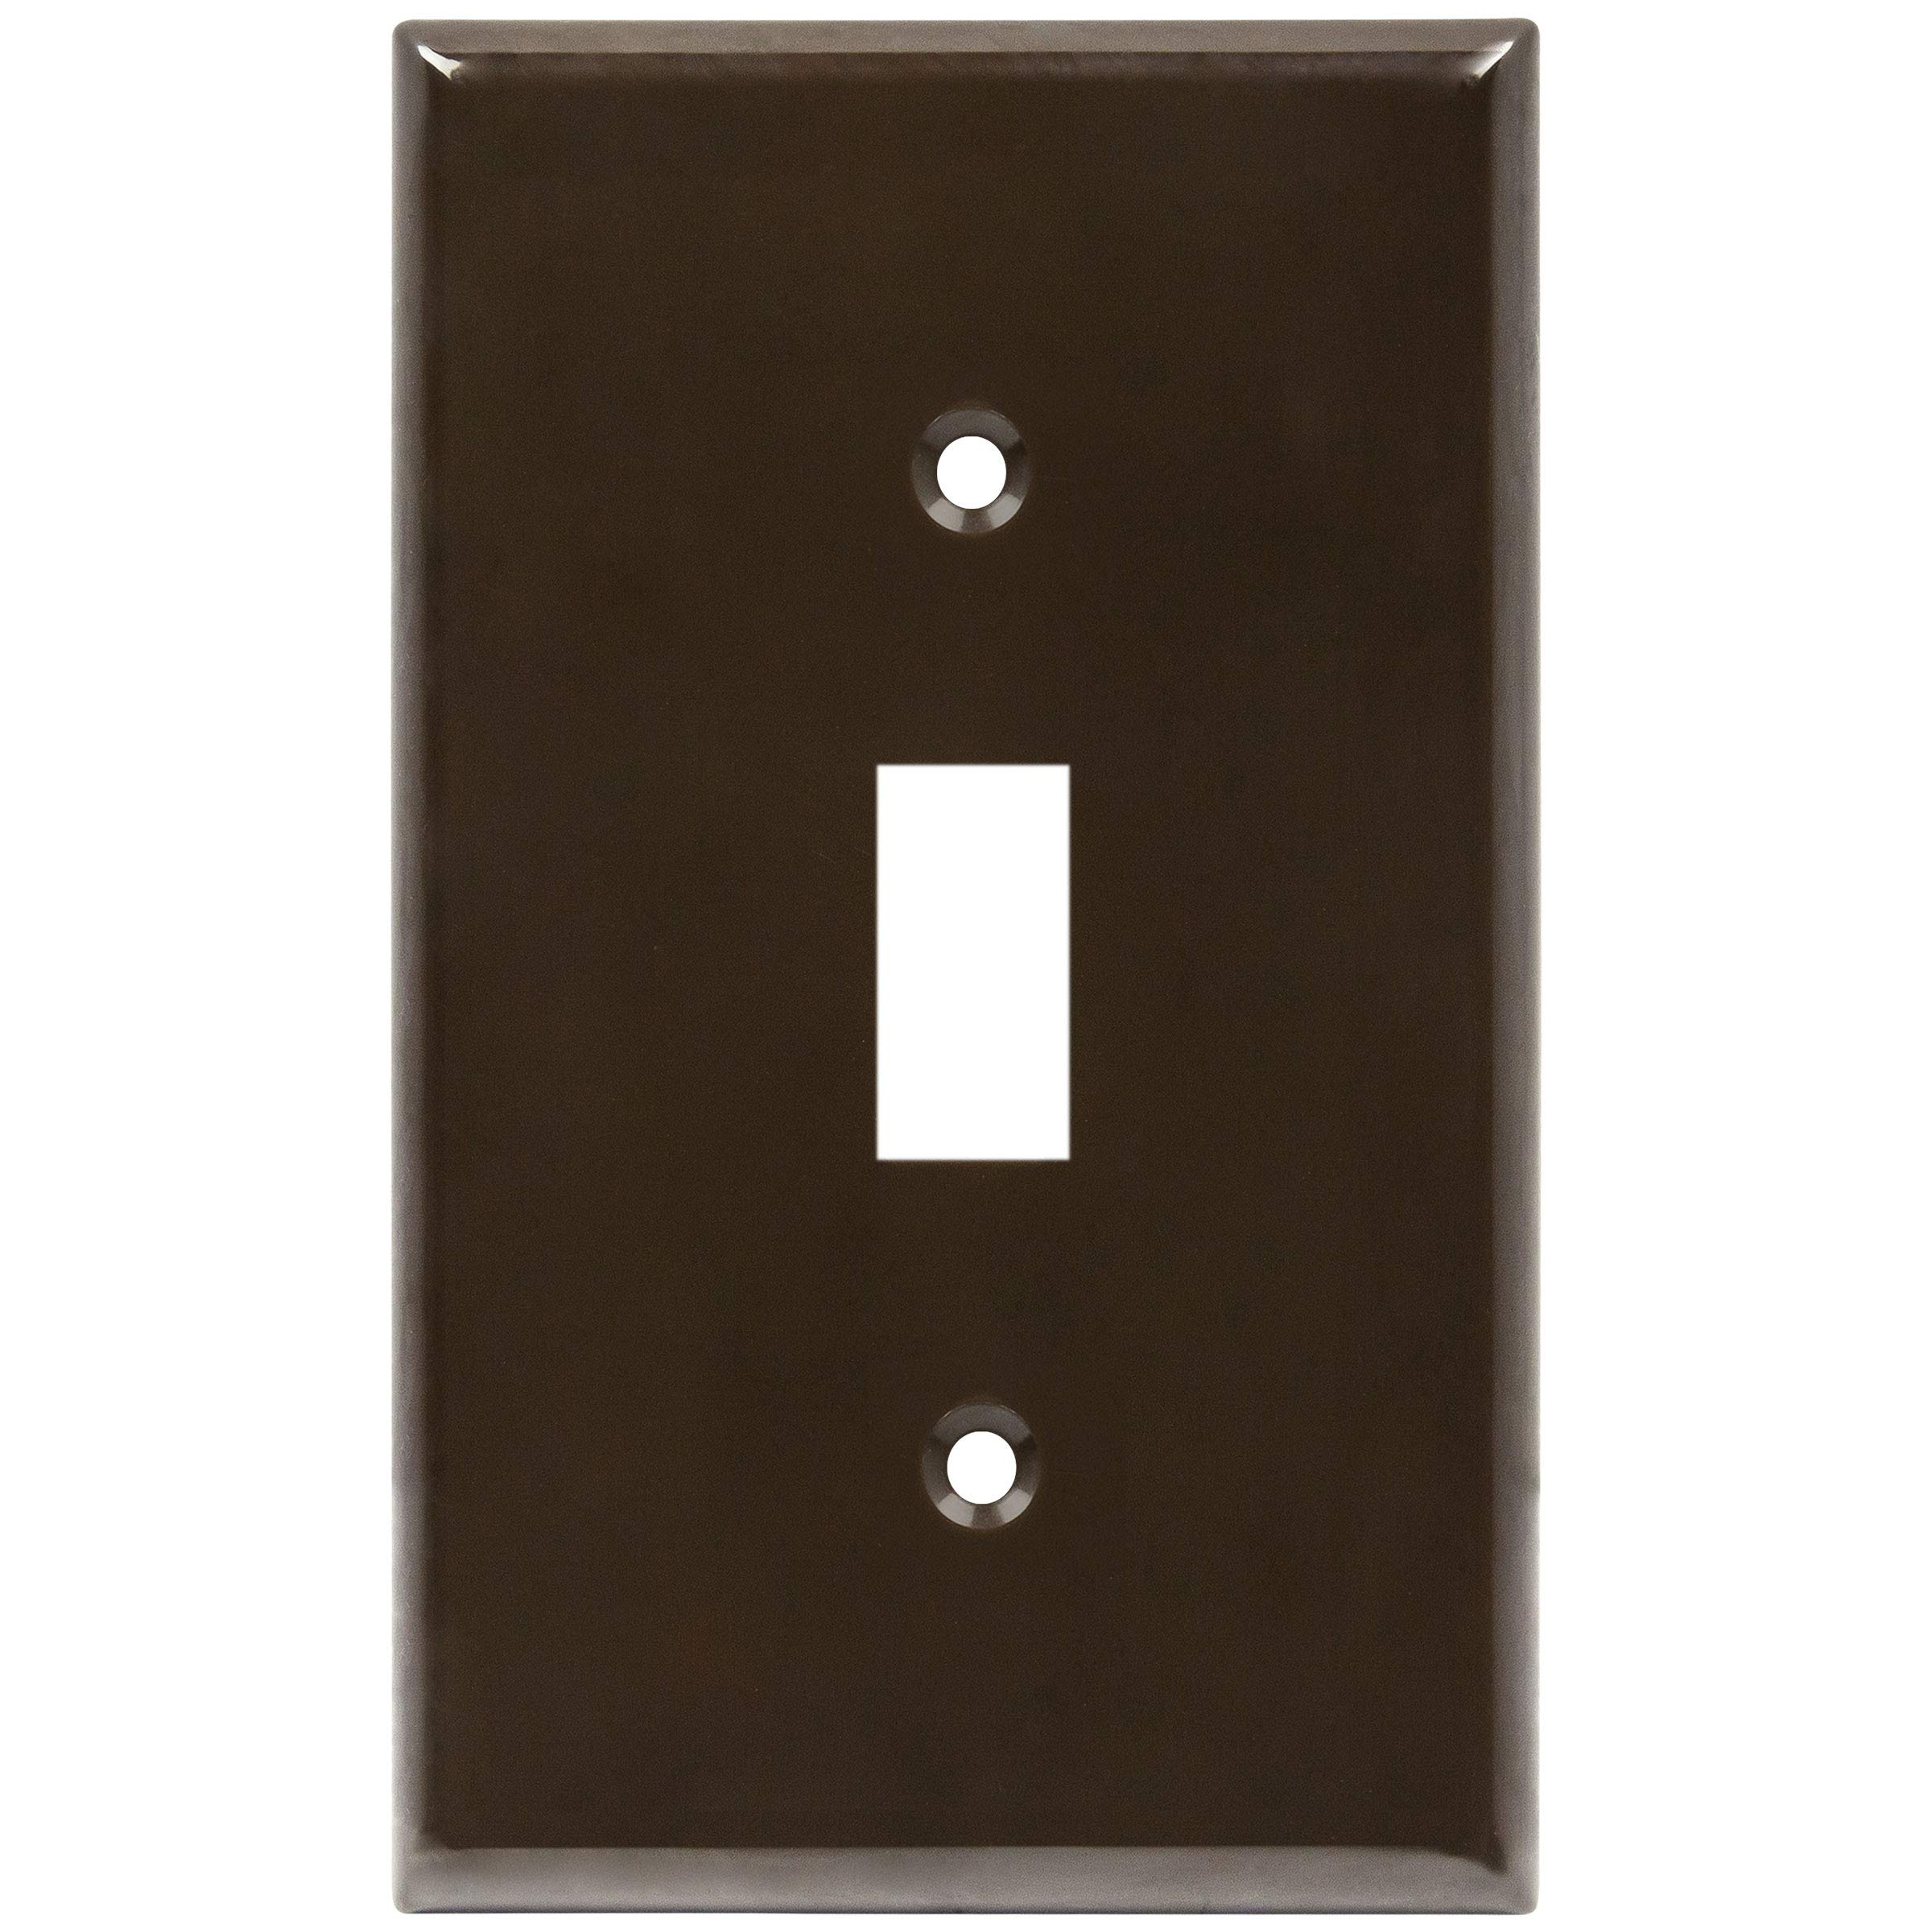 Standard Size 1 Gang 4 50 X 2 76 8811 Bk Unbreakable Polycarbonate Thermoplastic Enerlites Toggle Light Switch Wall Plate Black Wall Plates Accessories Saidli Wall Plates